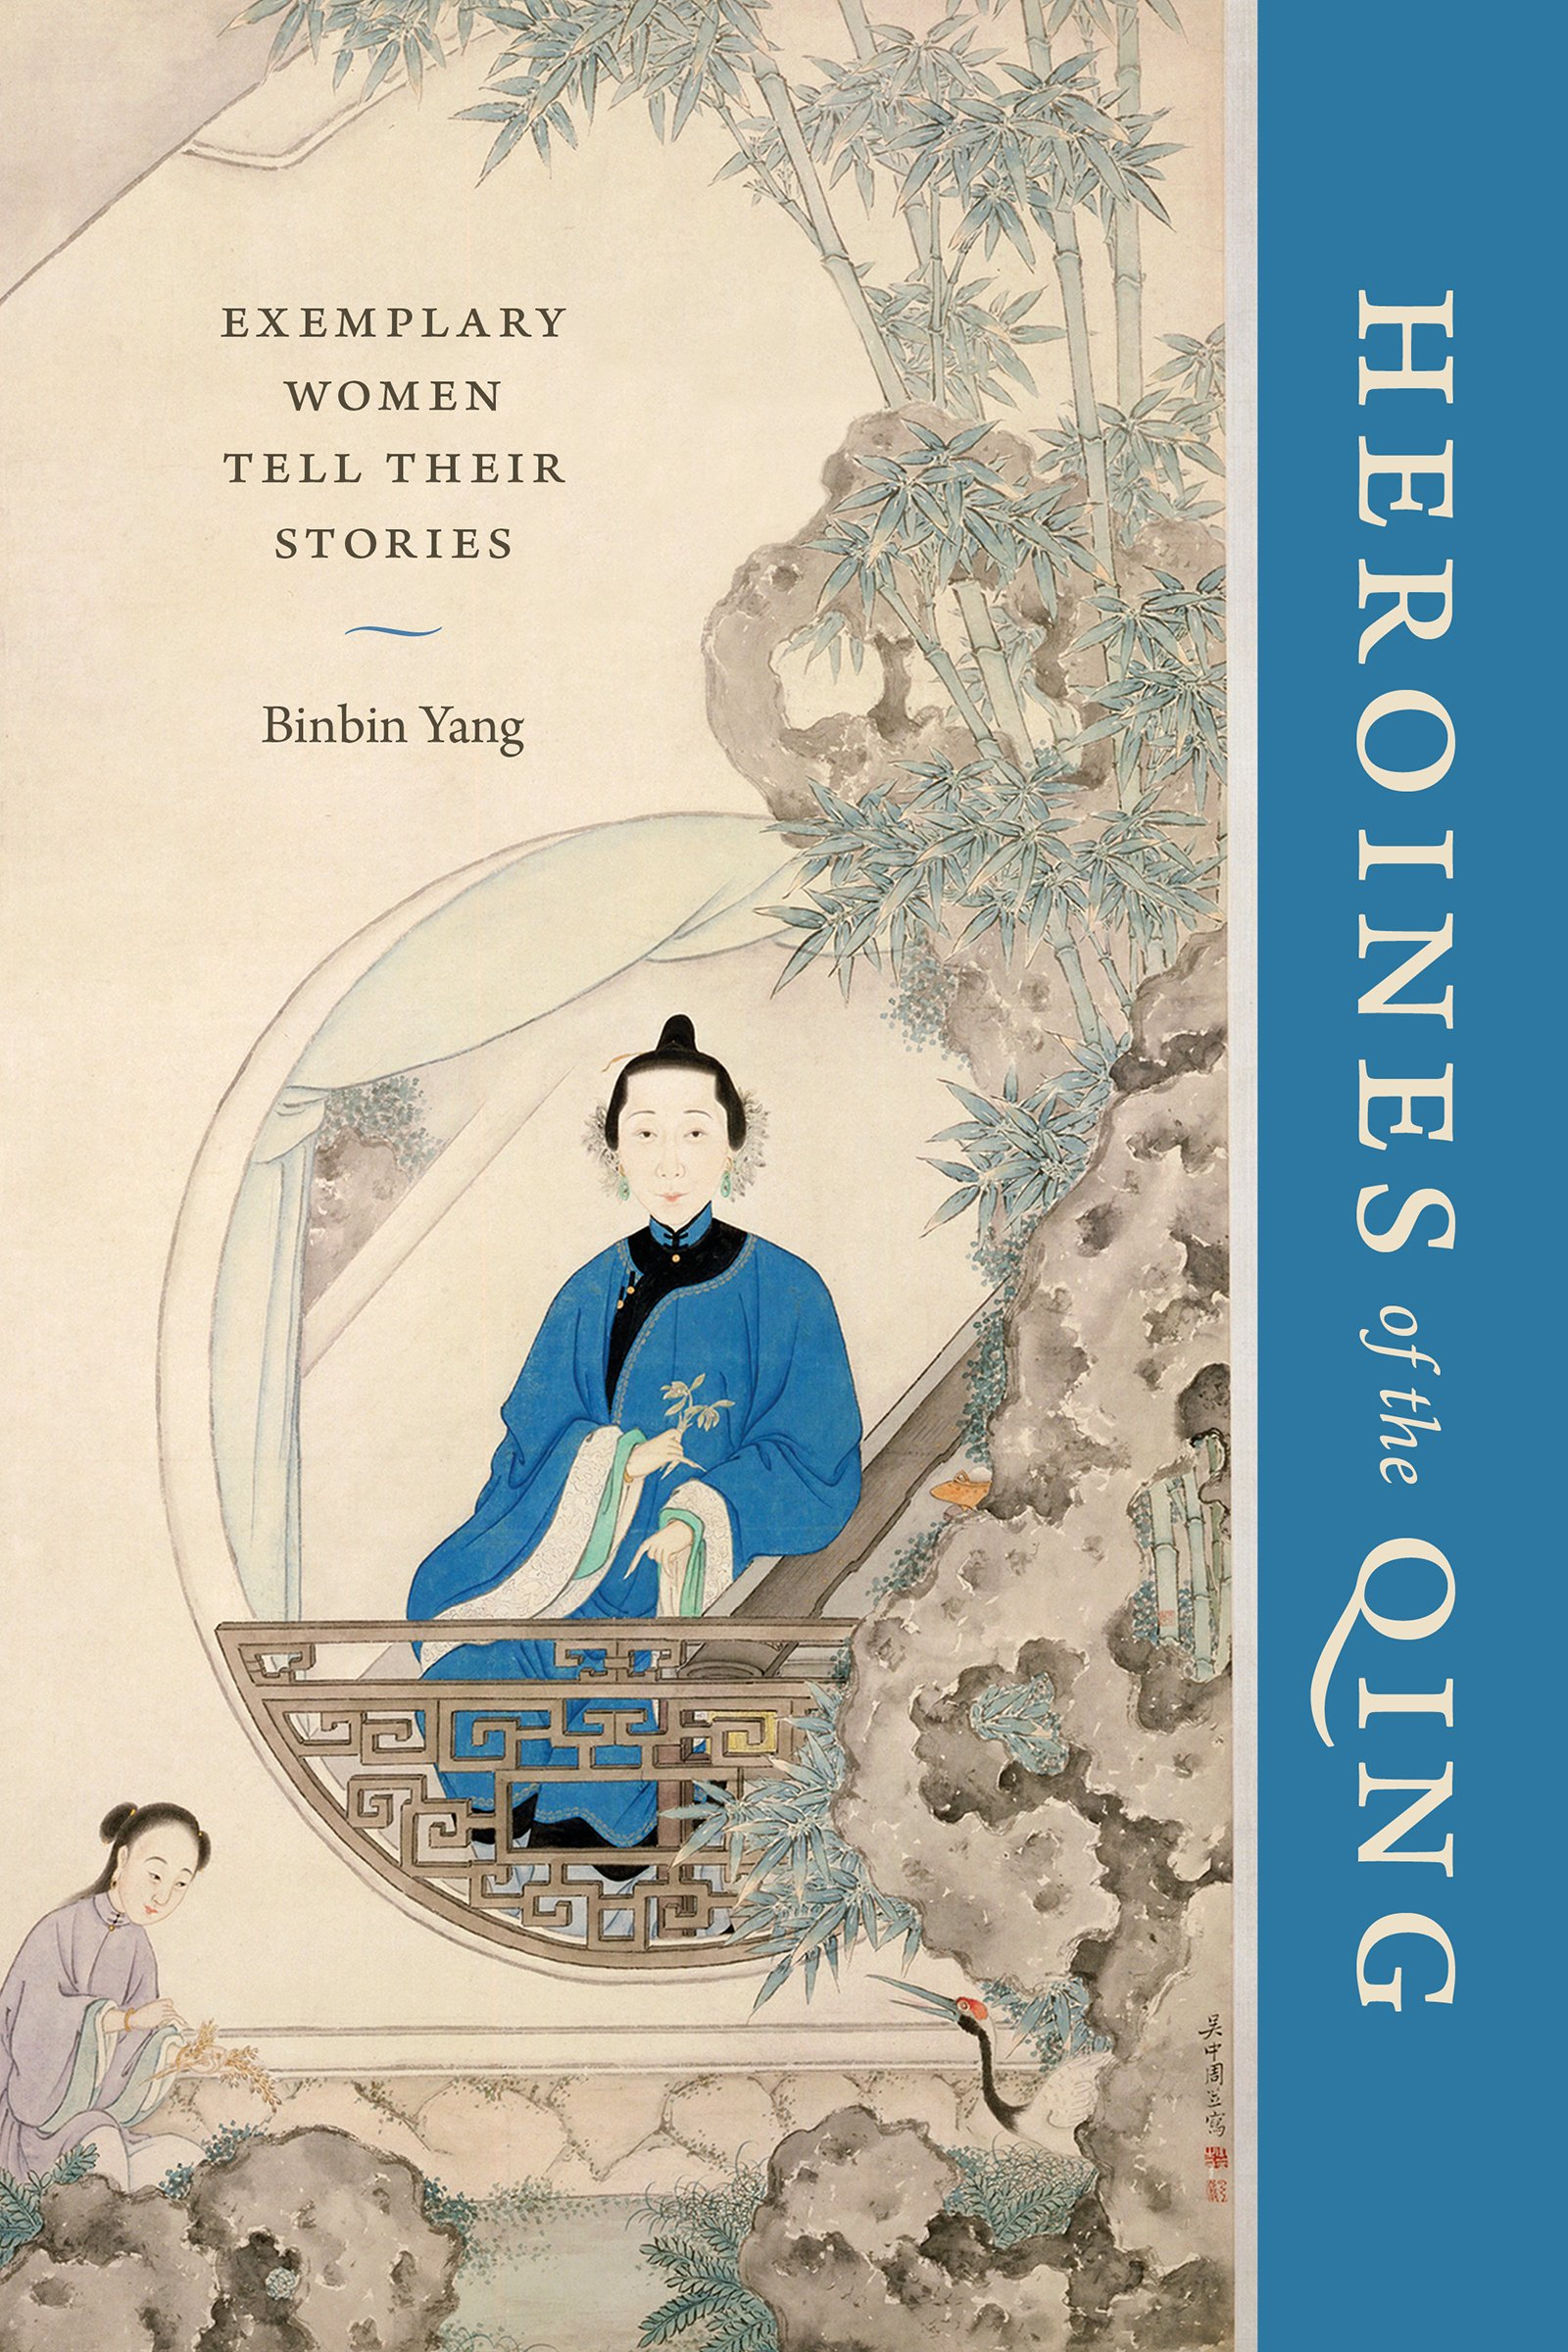 Download Heroines of the Qing: Exemplary Women Tell Their Stories (Modern Language Initiative Books) ebook